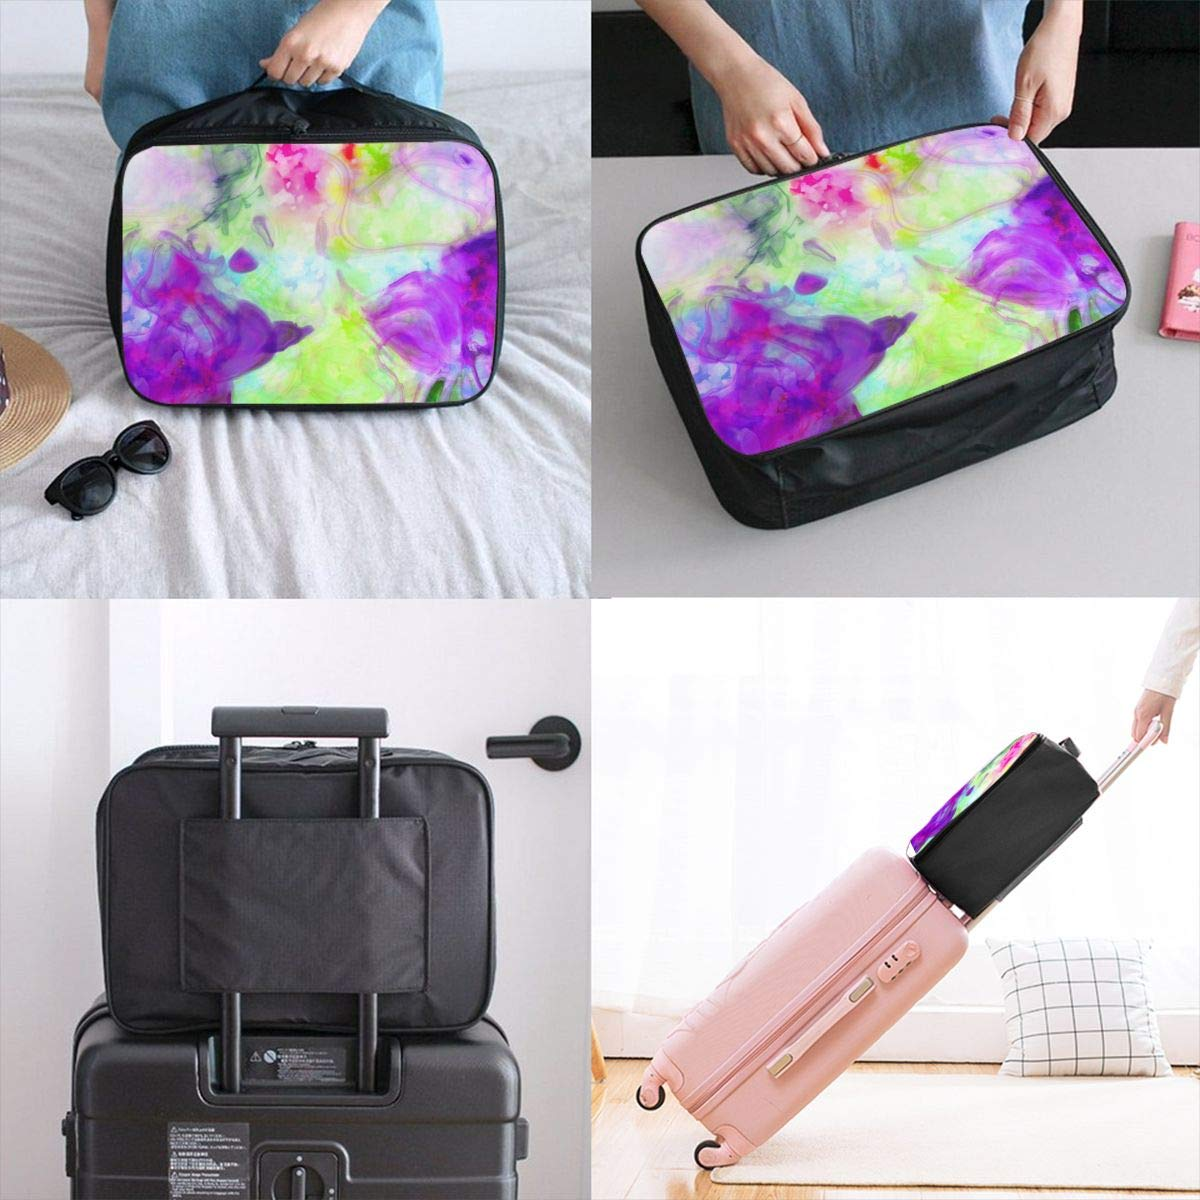 Fluid Texture Watercolor Travel Lightweight Waterproof Foldable Storage Carry Luggage Large Capacity Portable Luggage Bag Duffel Bag